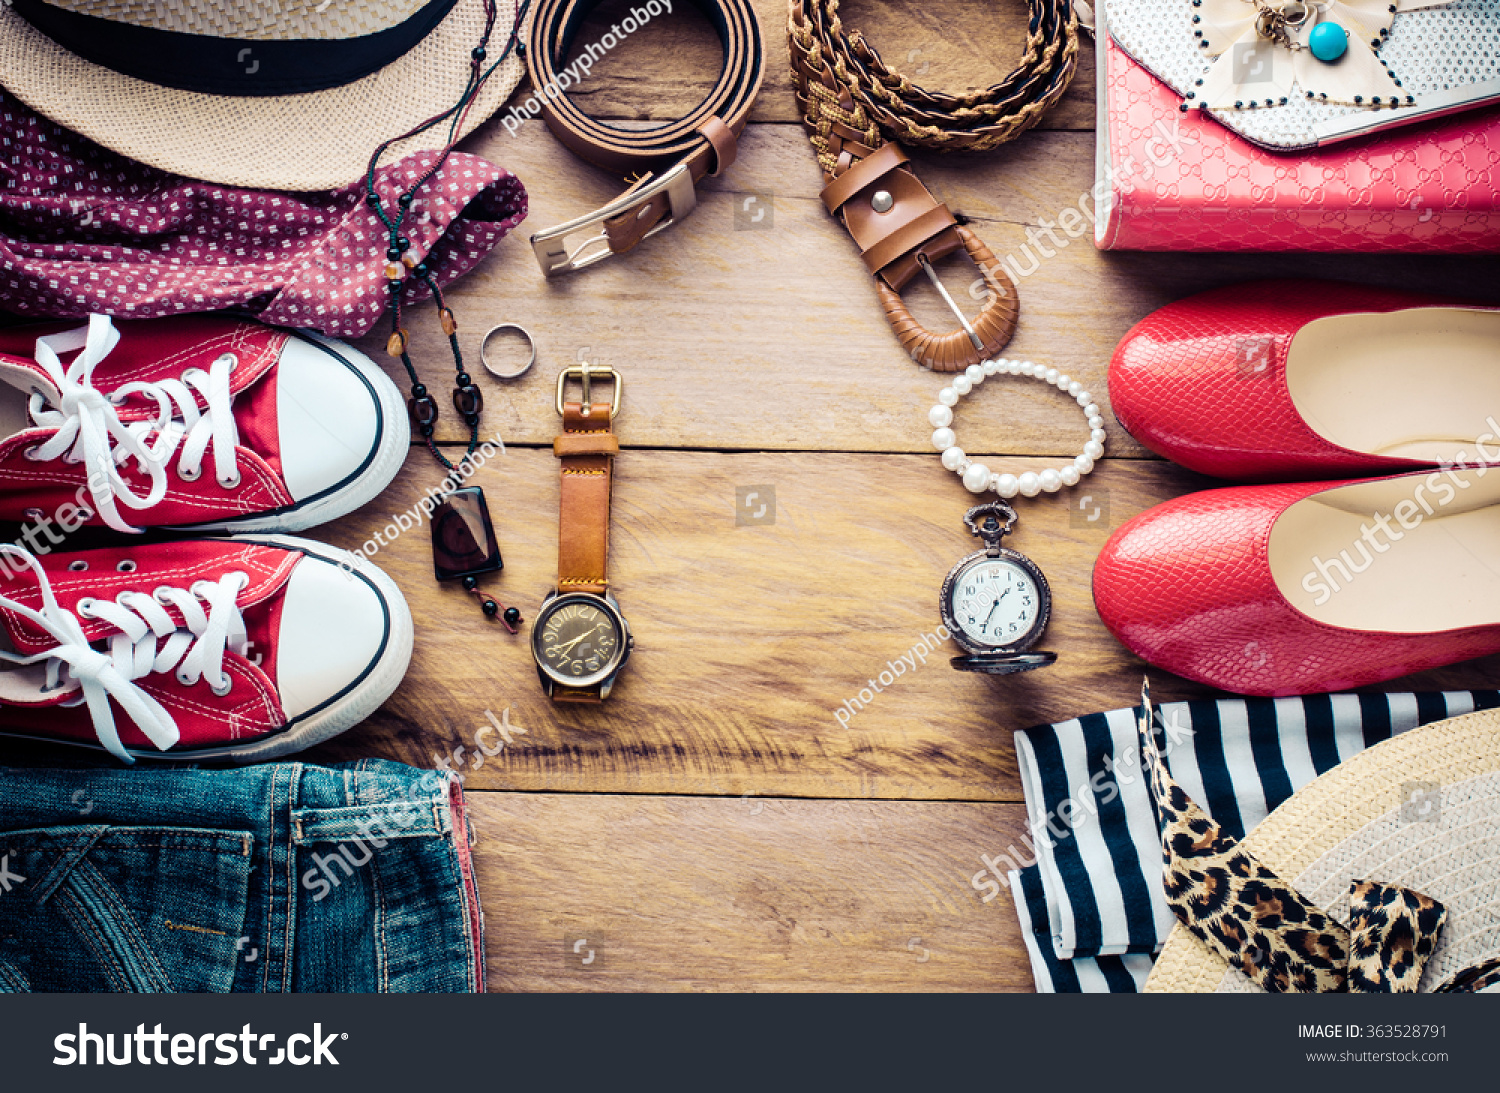 Travel Accessories For Women Selection